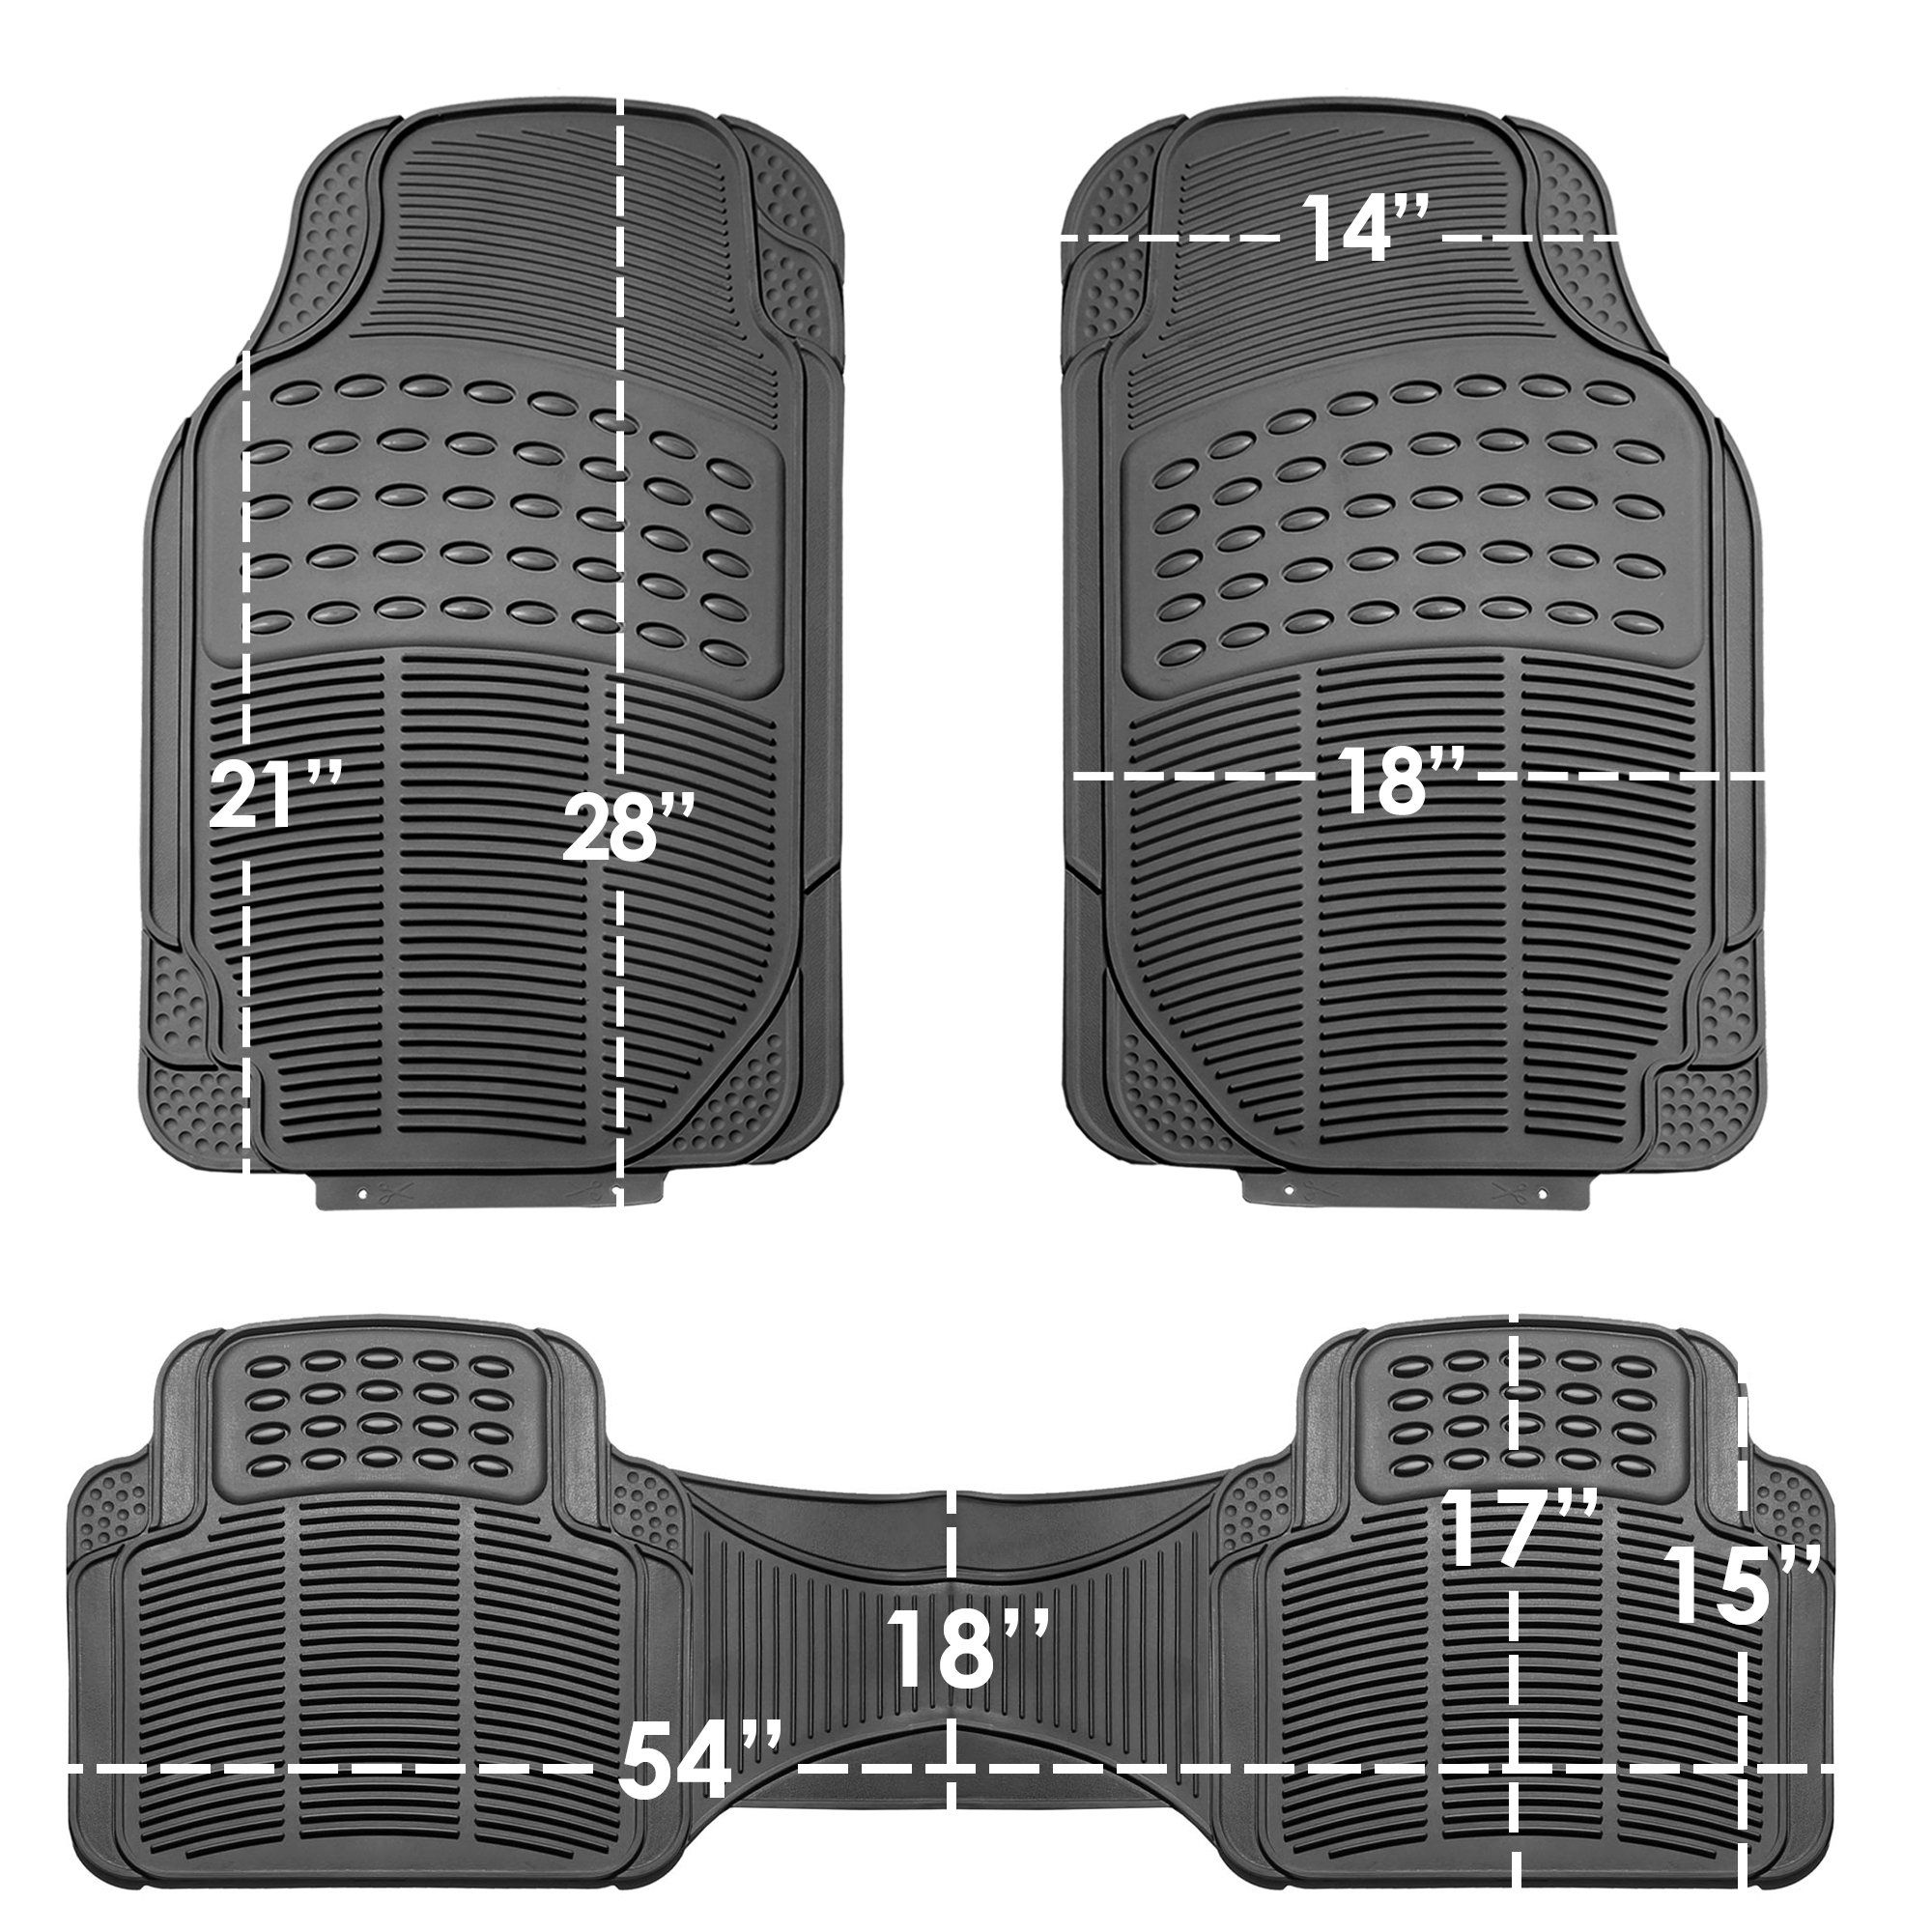 2013 Chevrolet Impala Red Oriental Driver /& Passenger Floor 2012 2008 2011 2007 2010 2009 GGBAILEY D2304A-F1A-RD-IS Custom Fit Car Mats for 2006